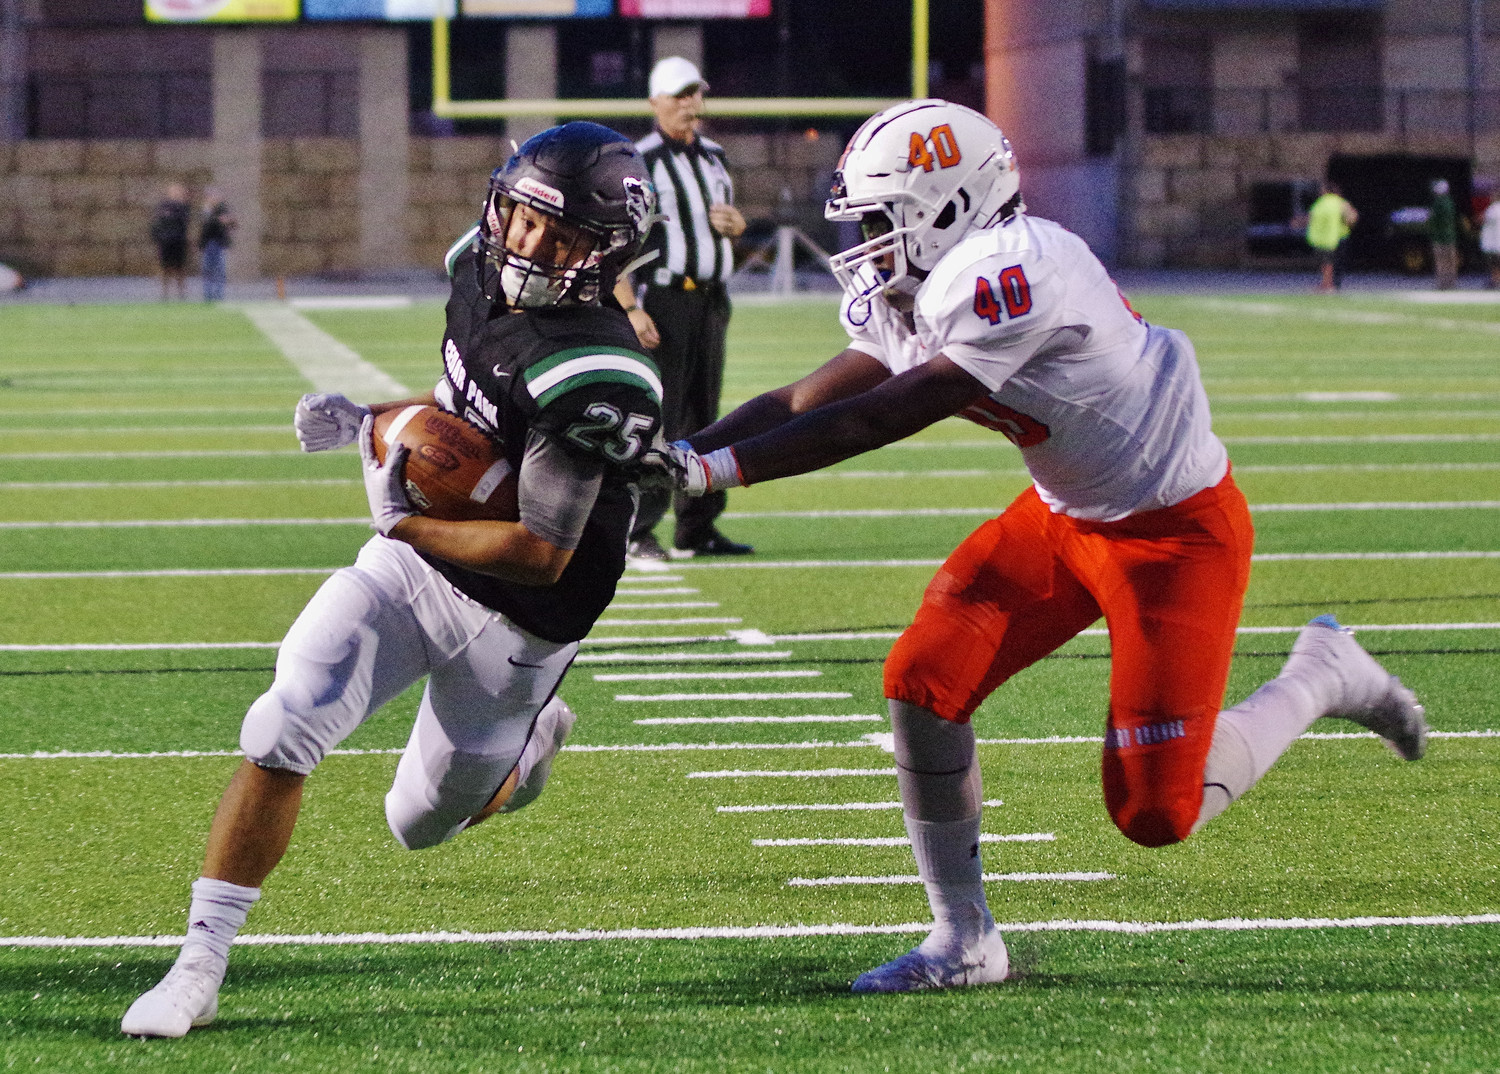 Cedar Park running back Daniel Hernandez (25) runs for a touchdown with seconds left before half-time against San Angelo on September 14, 2018.